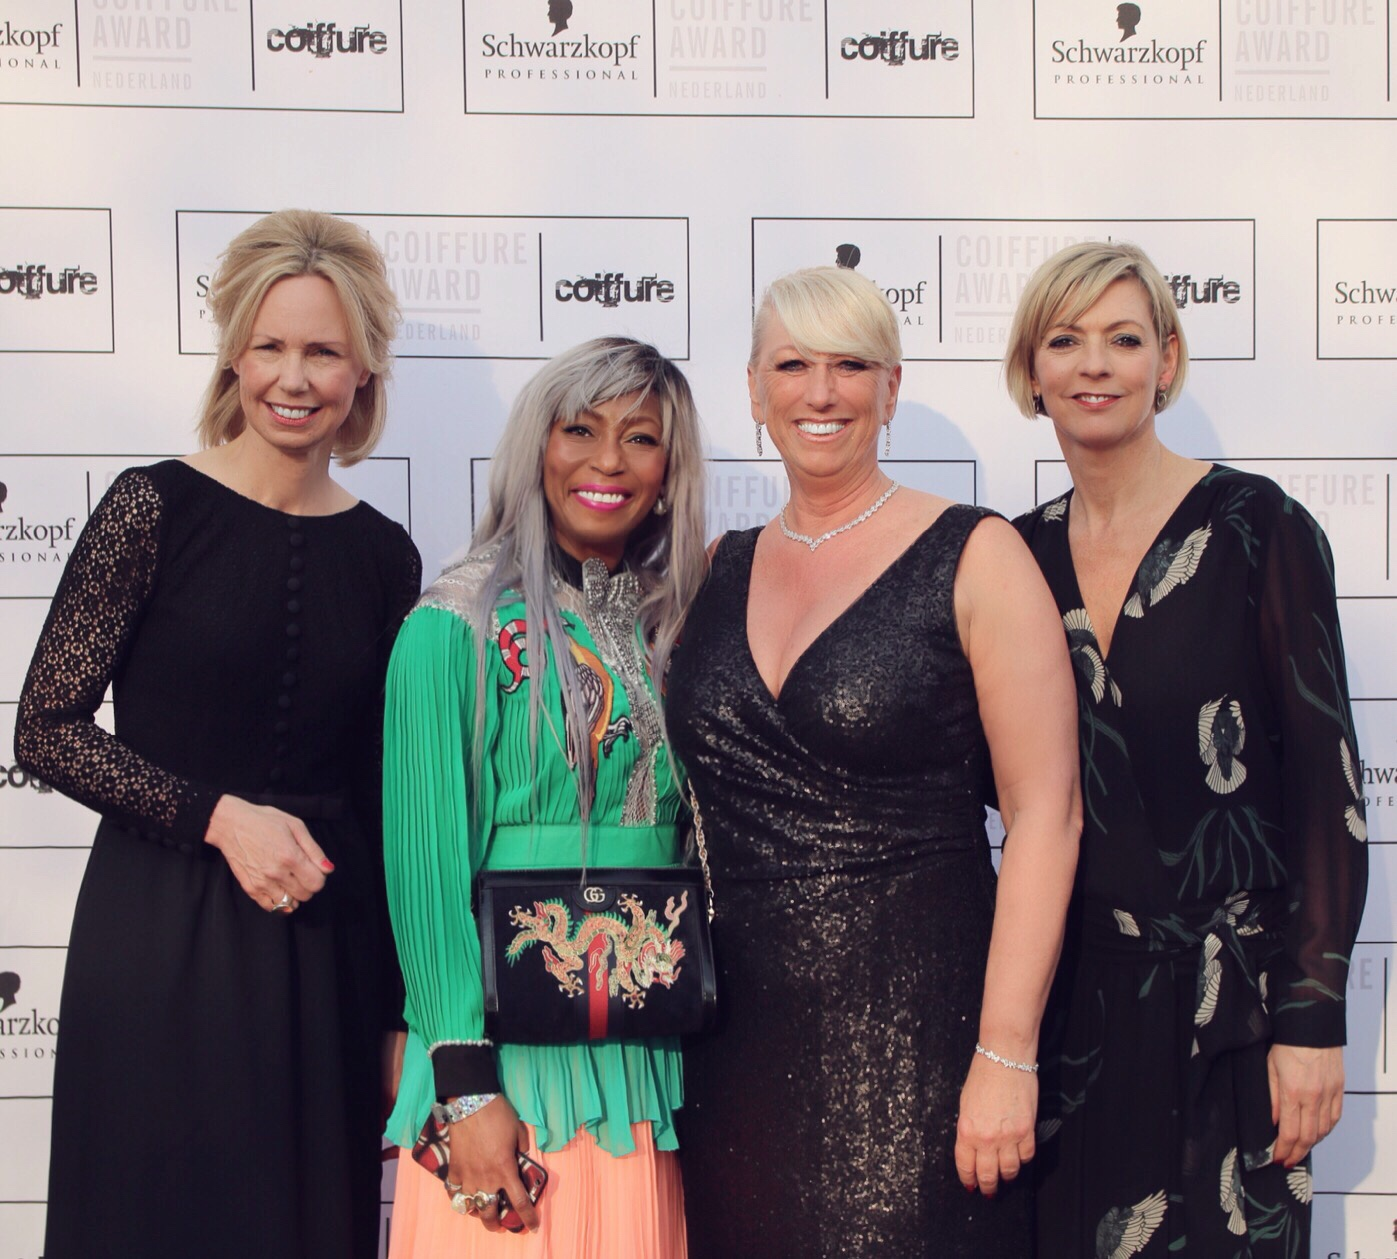 Coiffeuse Domicile Charleroi Coiffure Gala Coiffure 2019